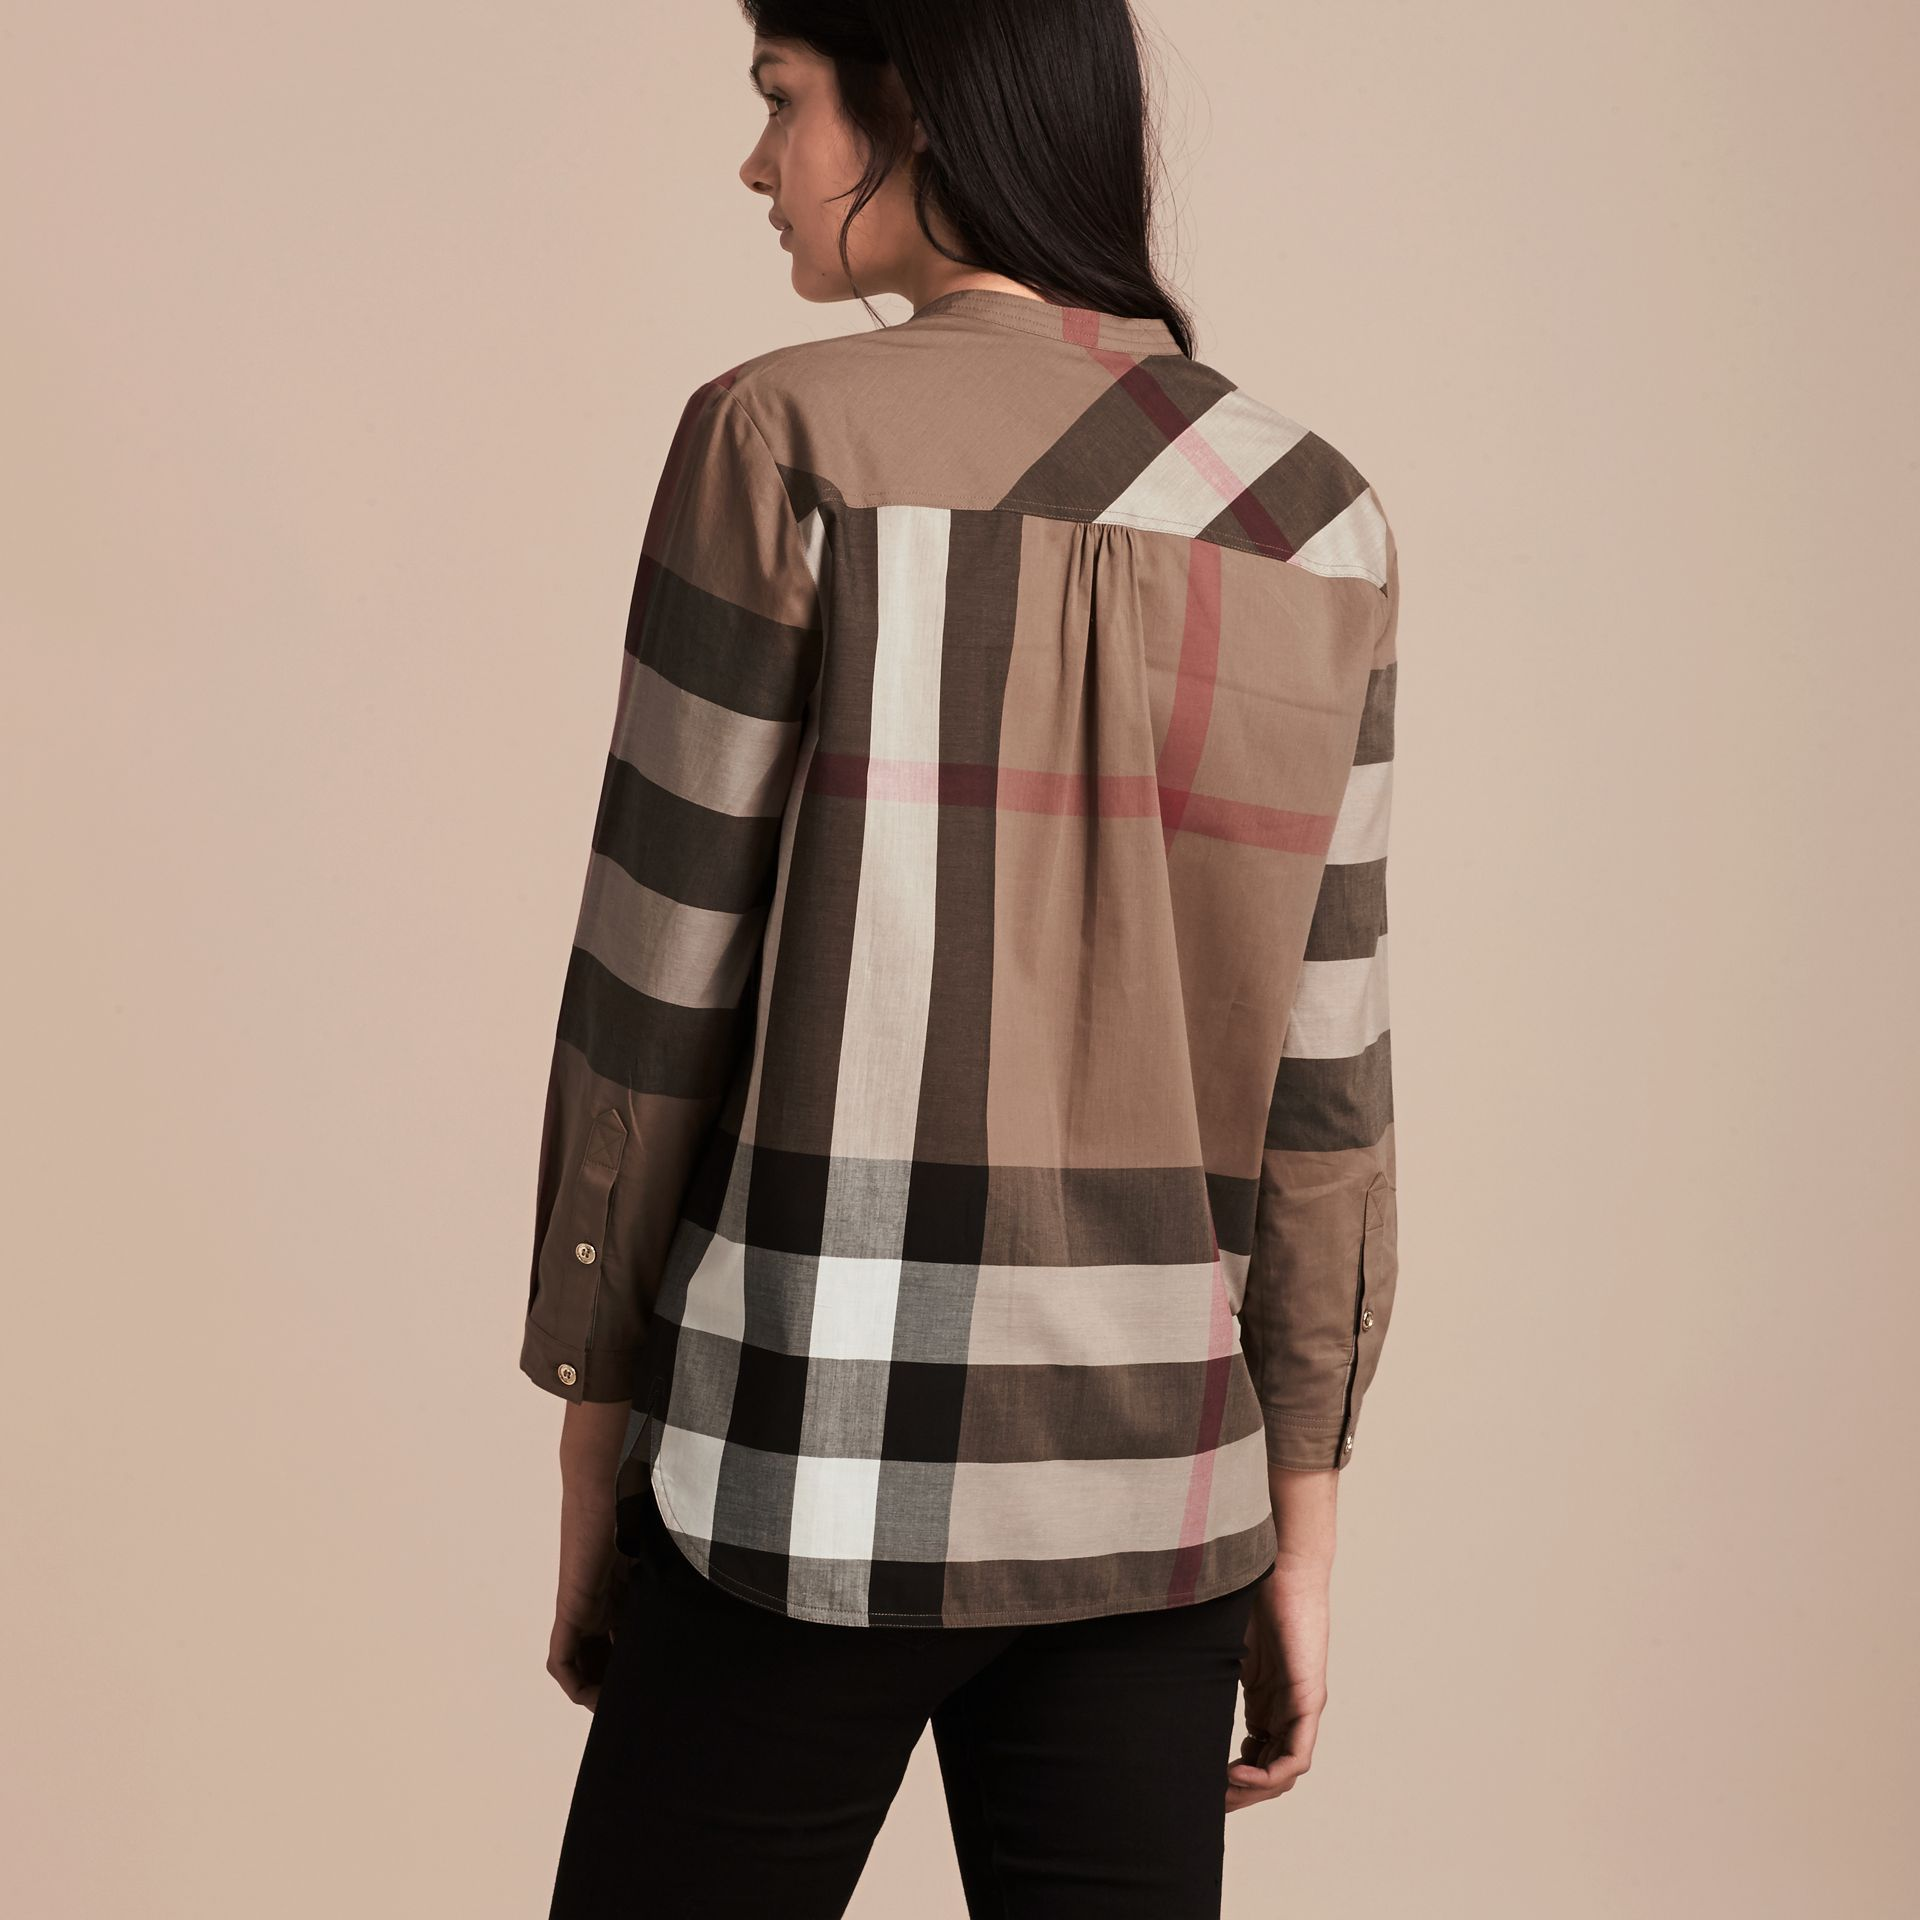 Taupe brown Check Cotton Tunic Shirt Taupe Brown - gallery image 3